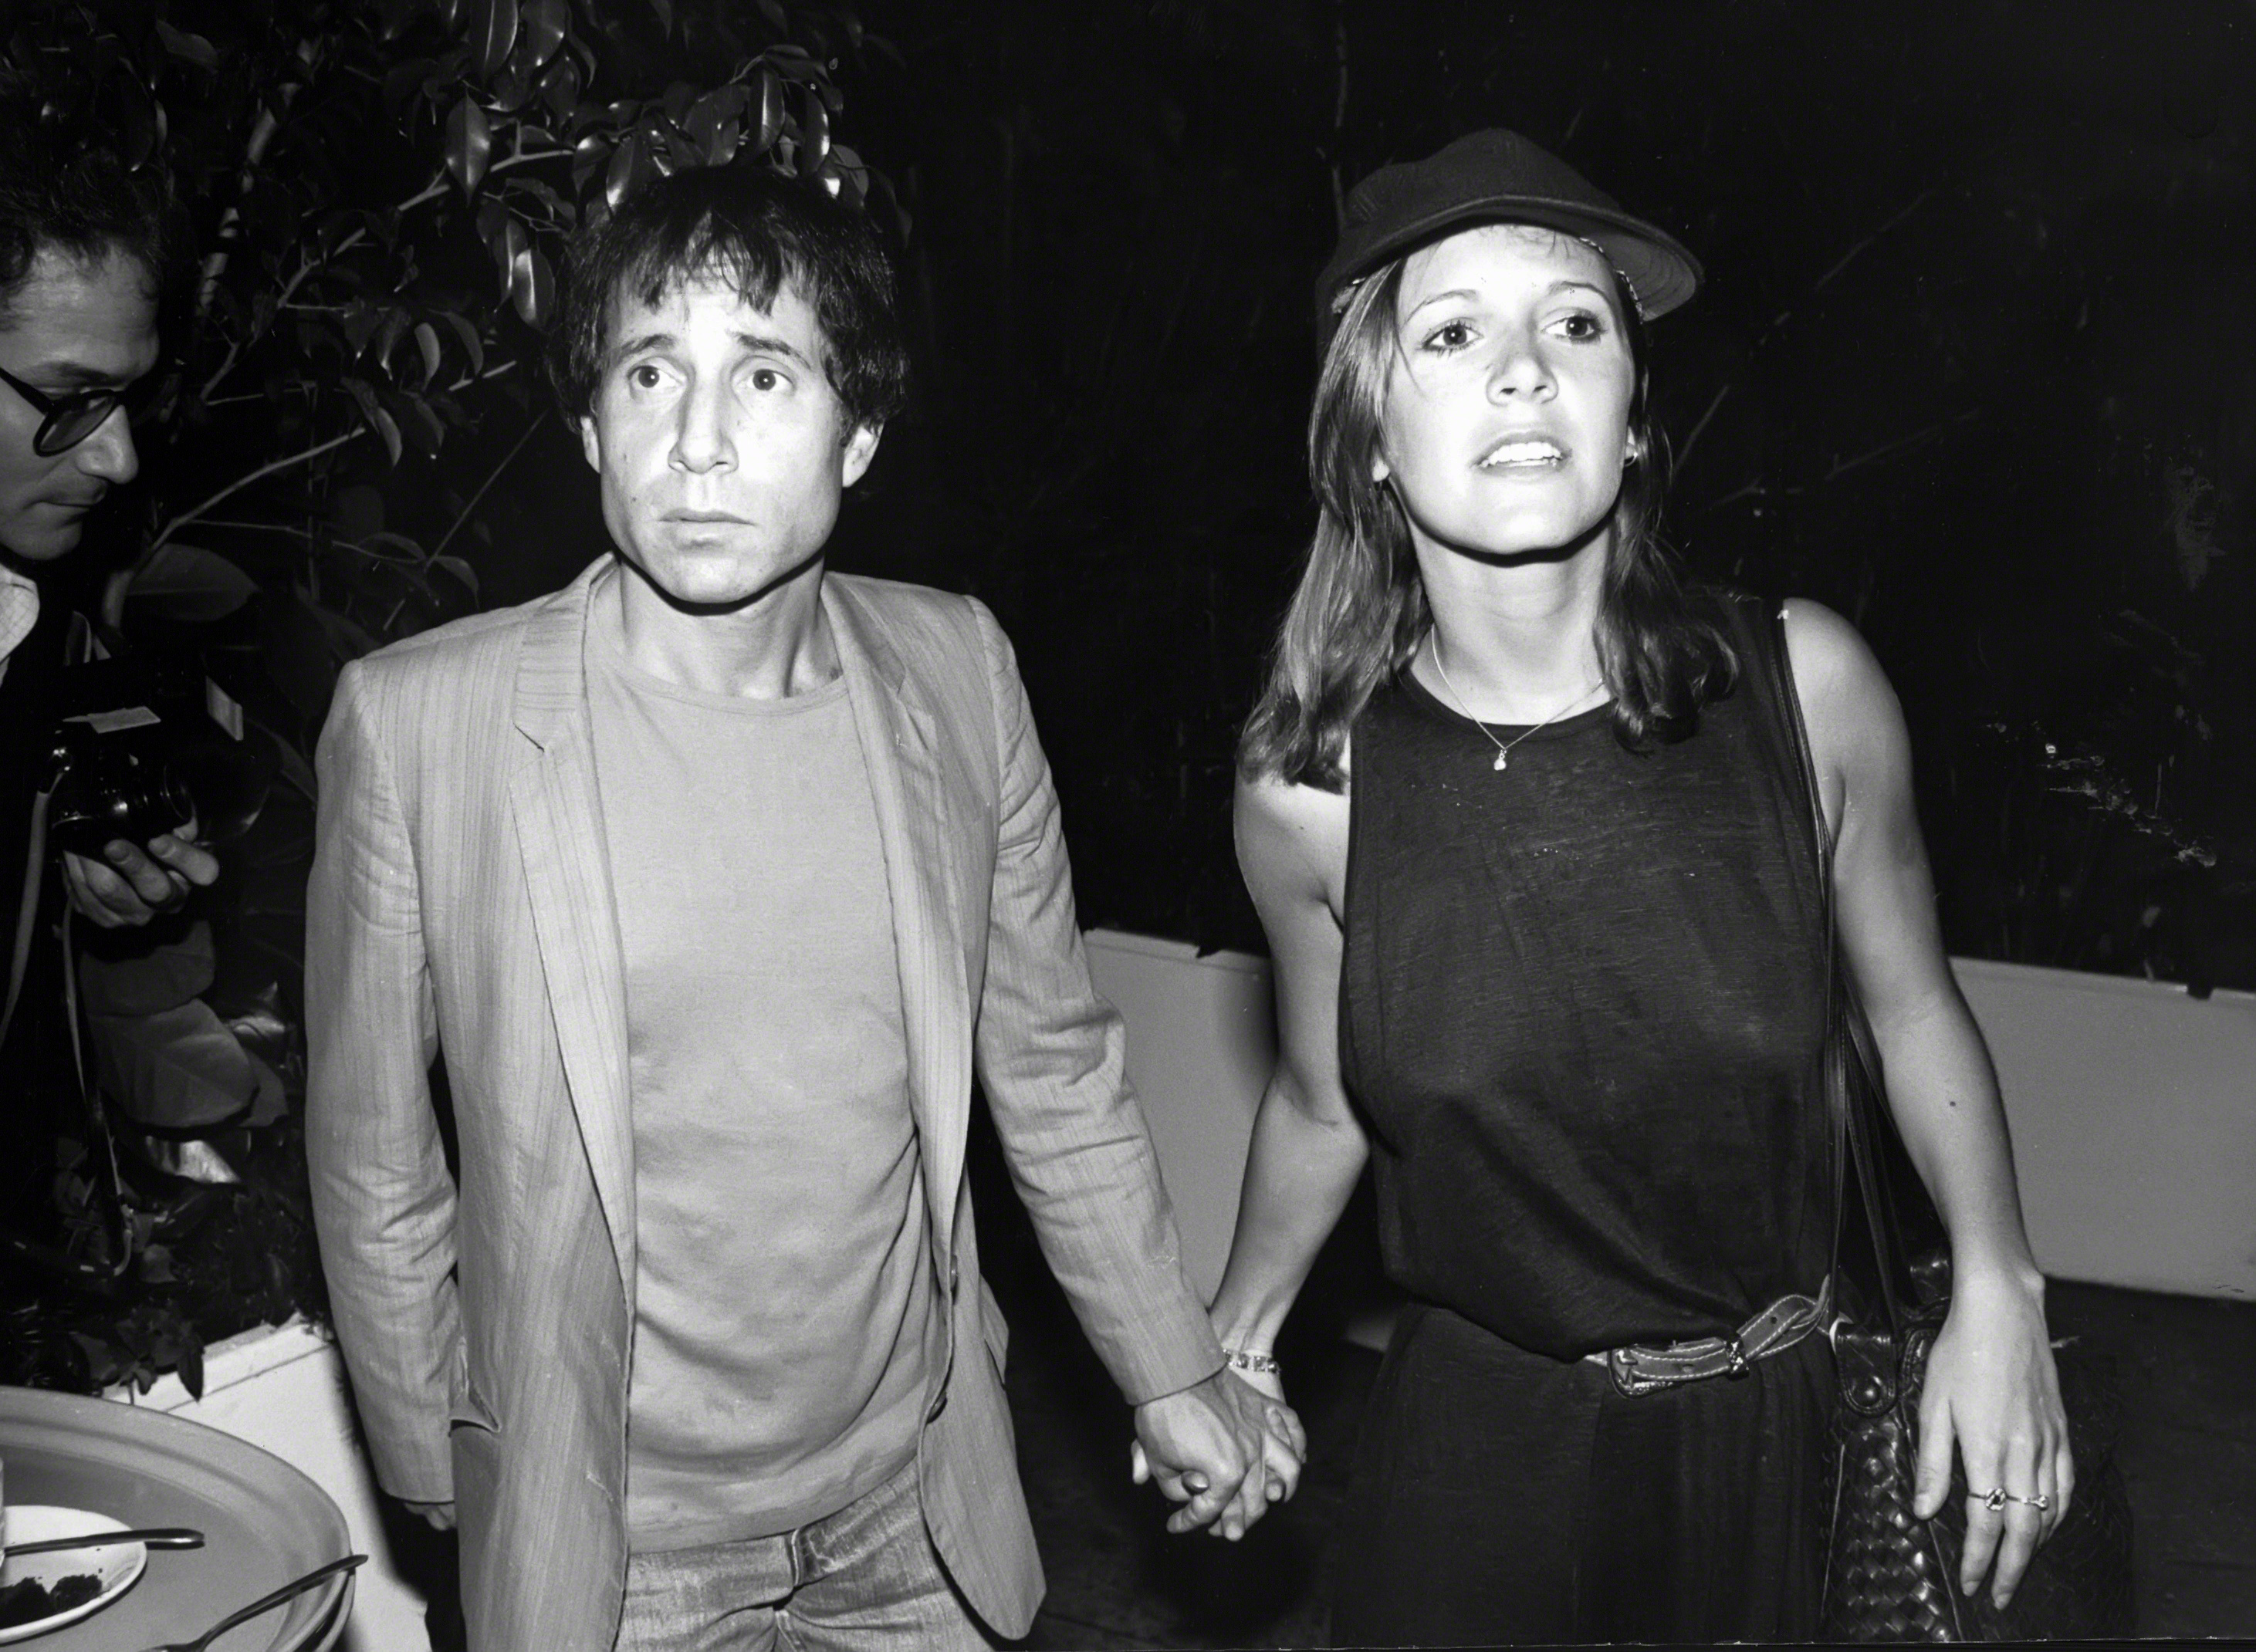 Paul Simon opens up about ex-wife Carrie Fisher's death, and we've got so many feels